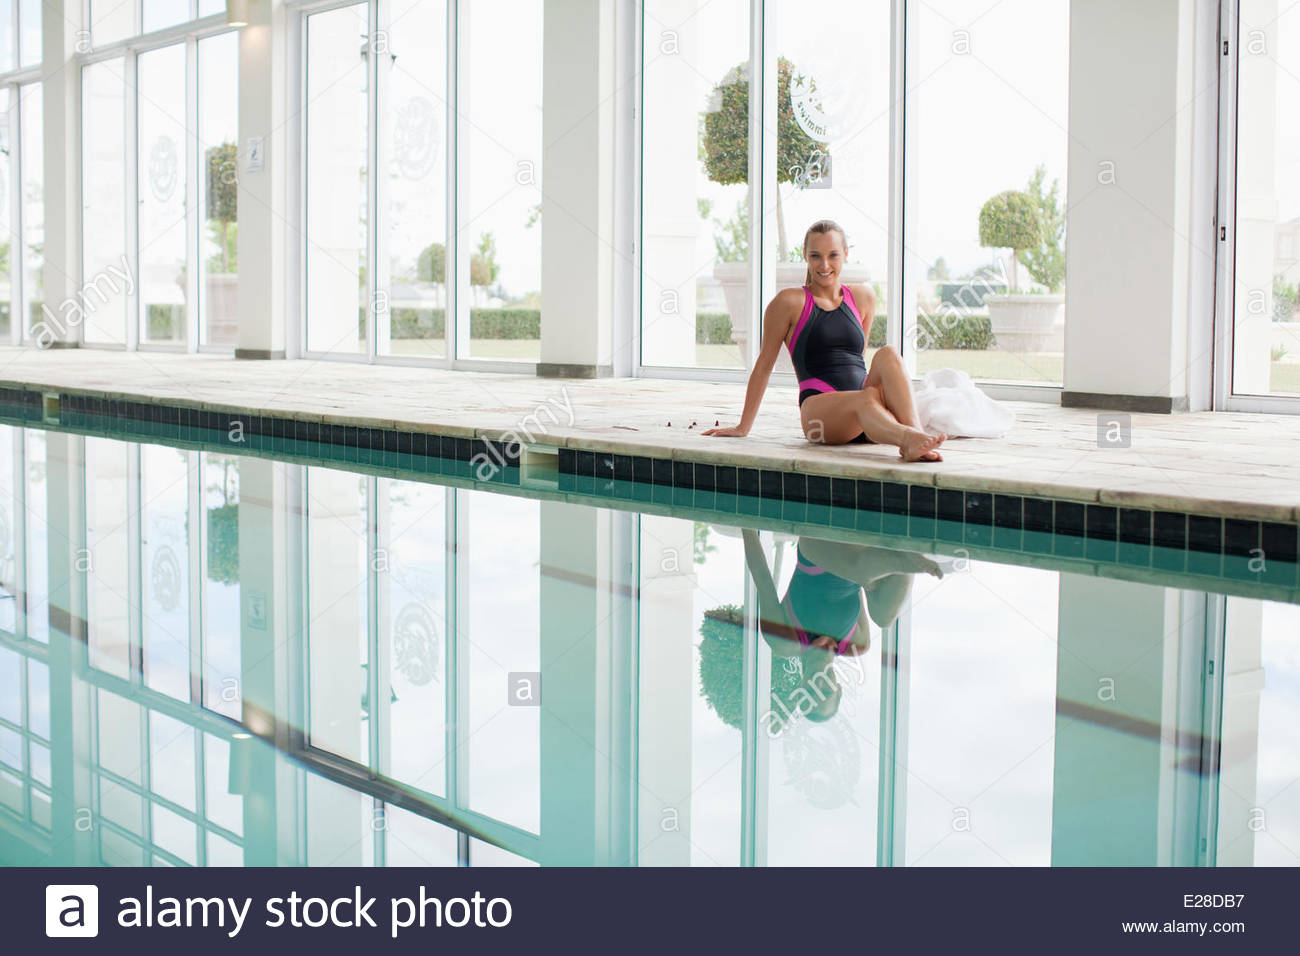 Portrait of smiling woman in bathing suit sitting poolside - Stock Image